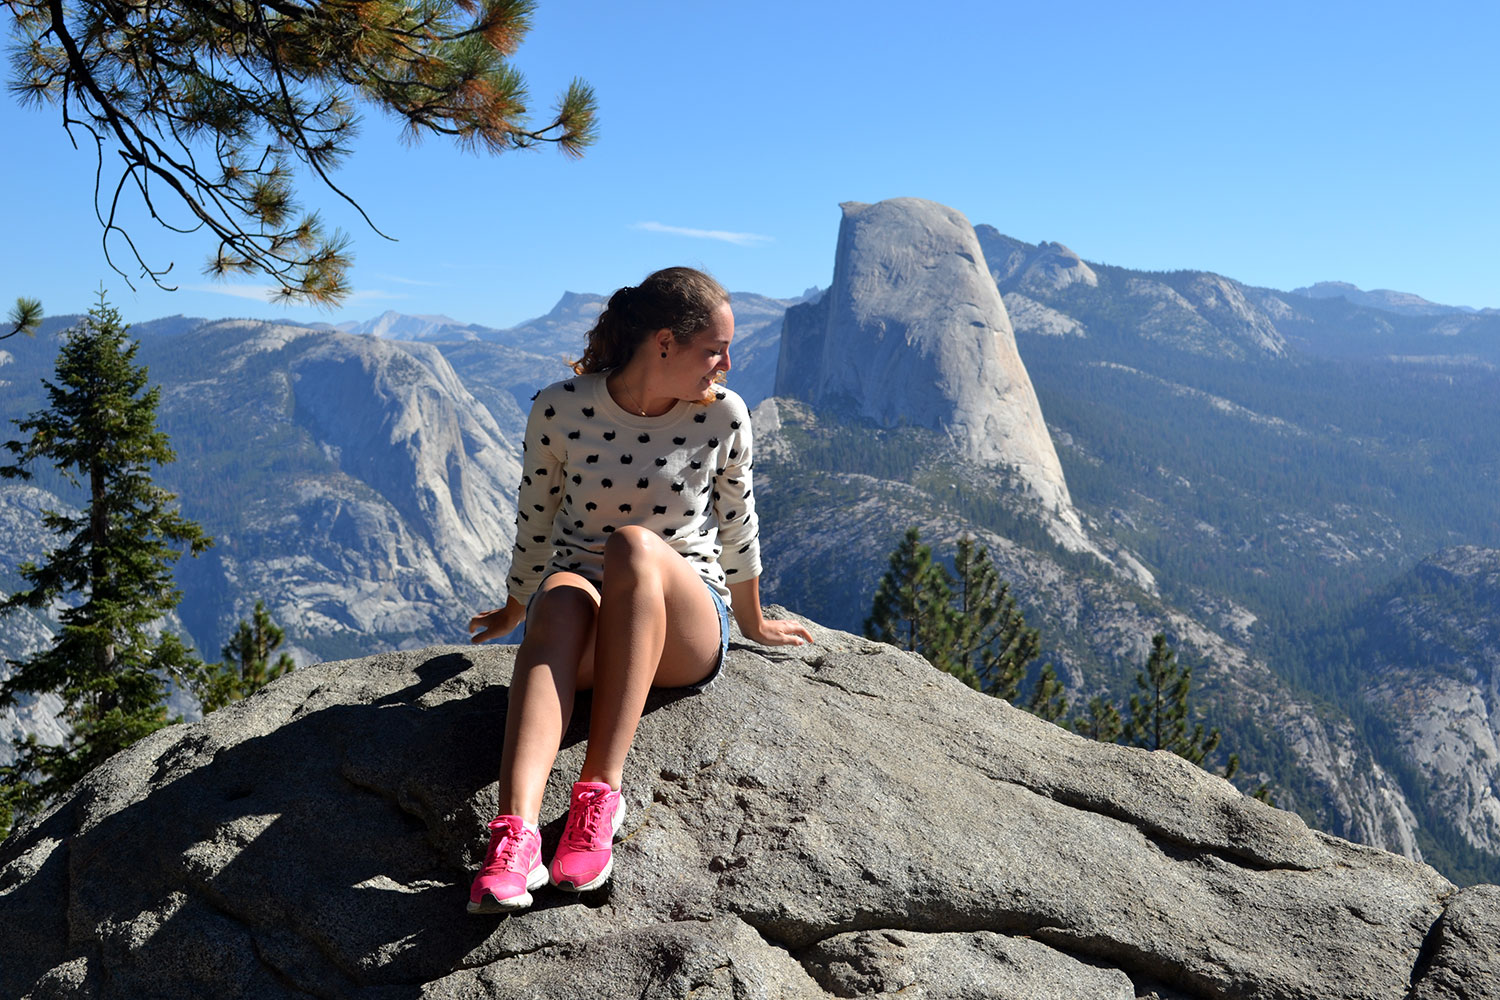 Travel Diary: Yosemite National Park | USA Roadtrip - Yosemite 2